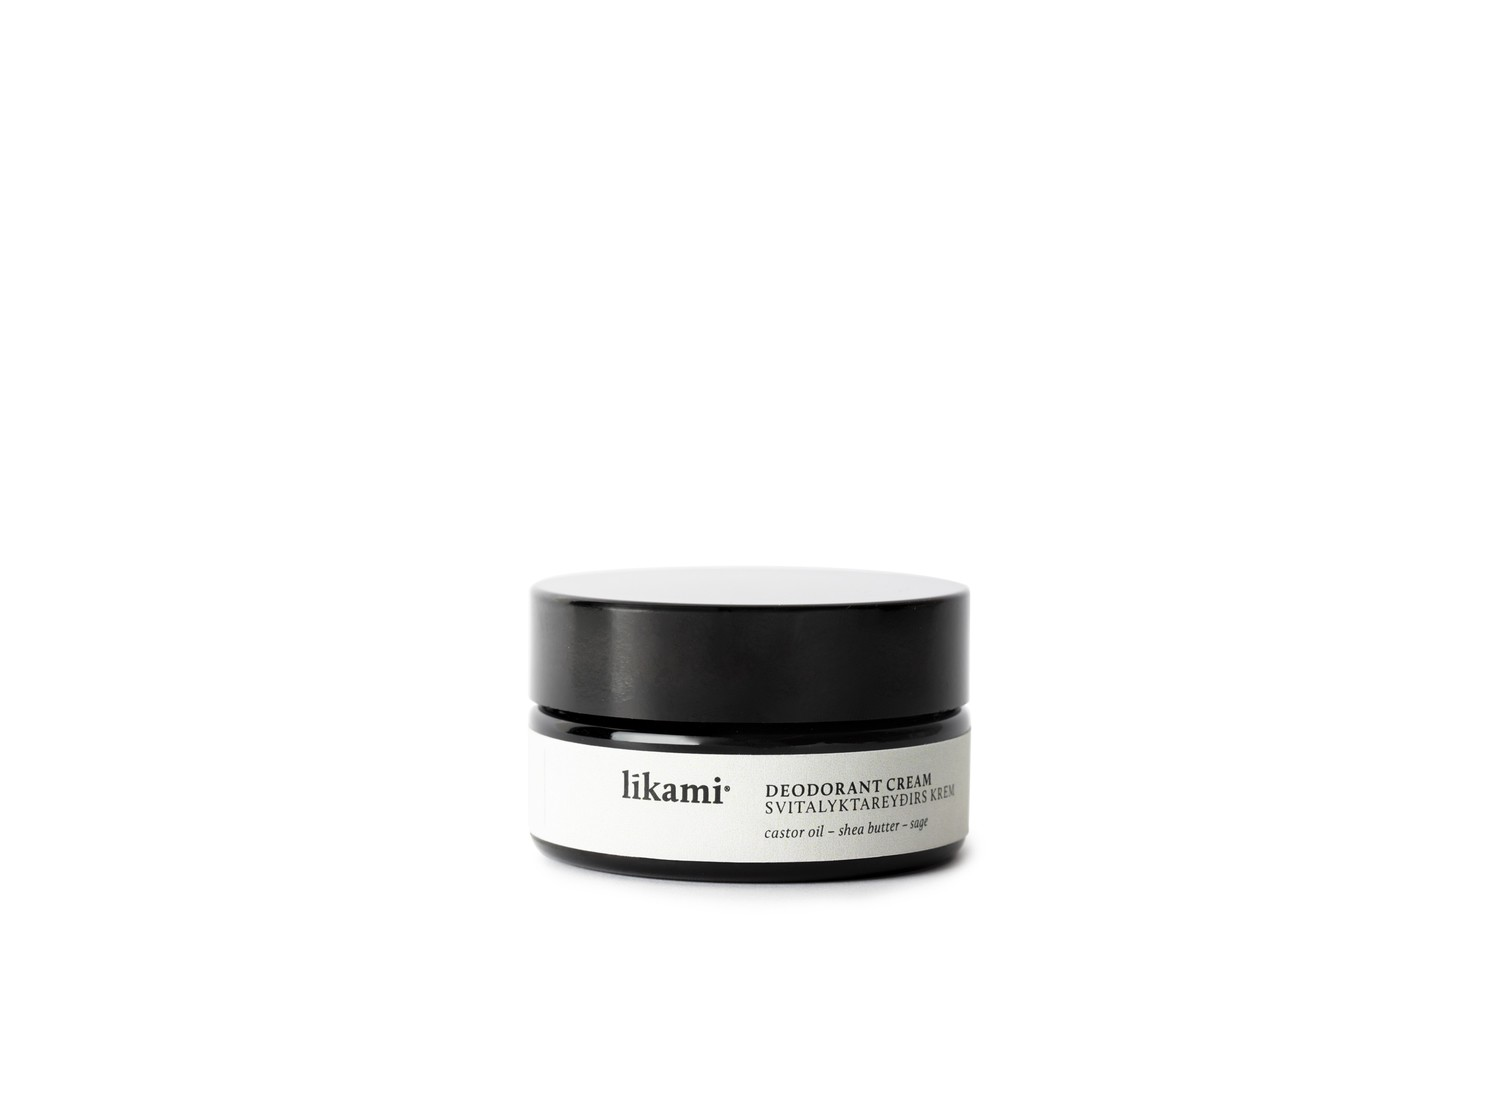 DEODORANT CREAM* - LIKAMI - 50ml